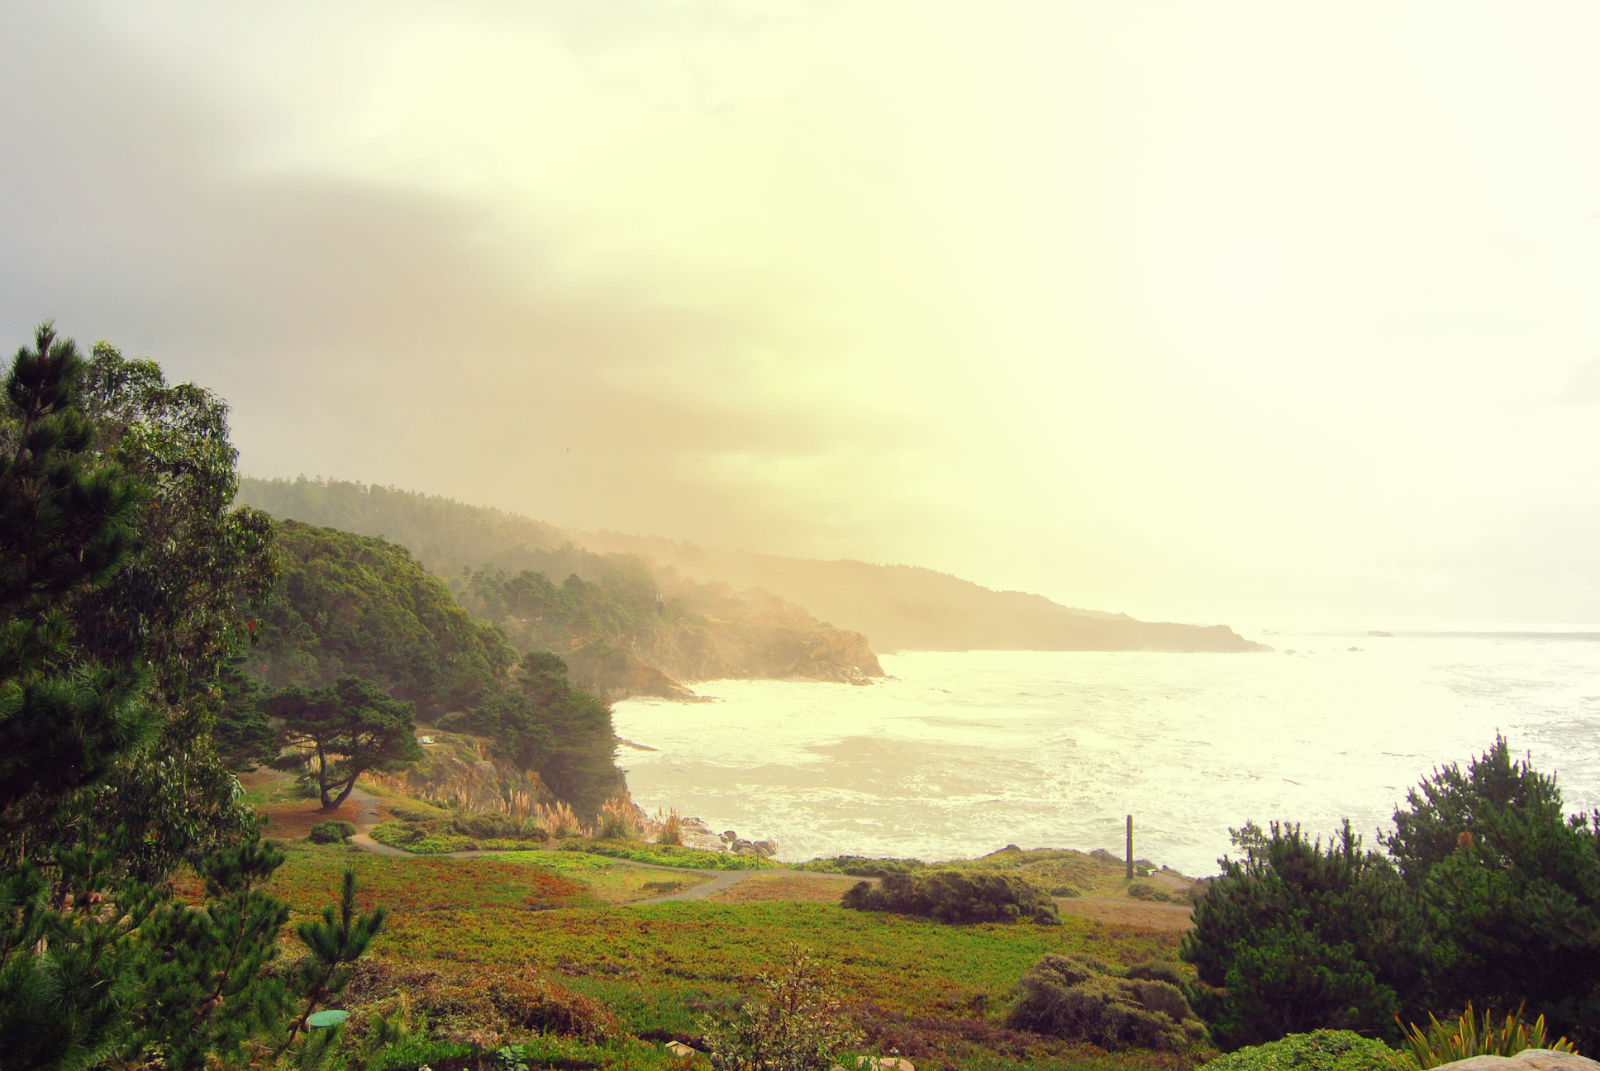 View from Timber Cove Inn